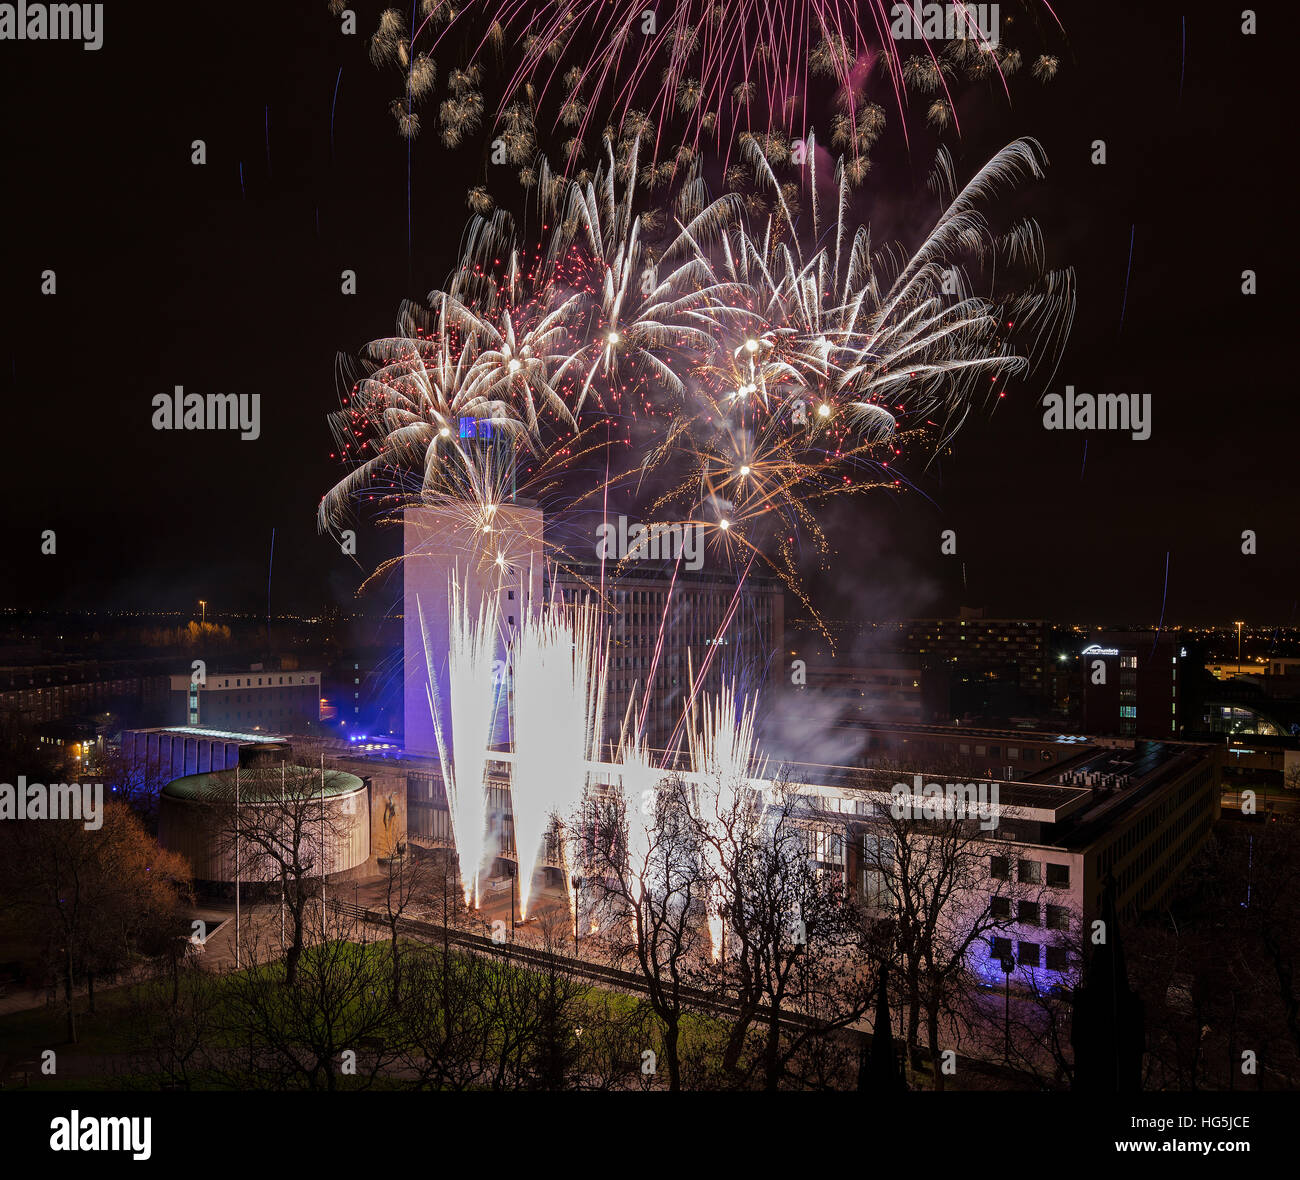 Firework display above the Civic Centre in Newcastle upon Tyne on New Year Eve - Stock Image